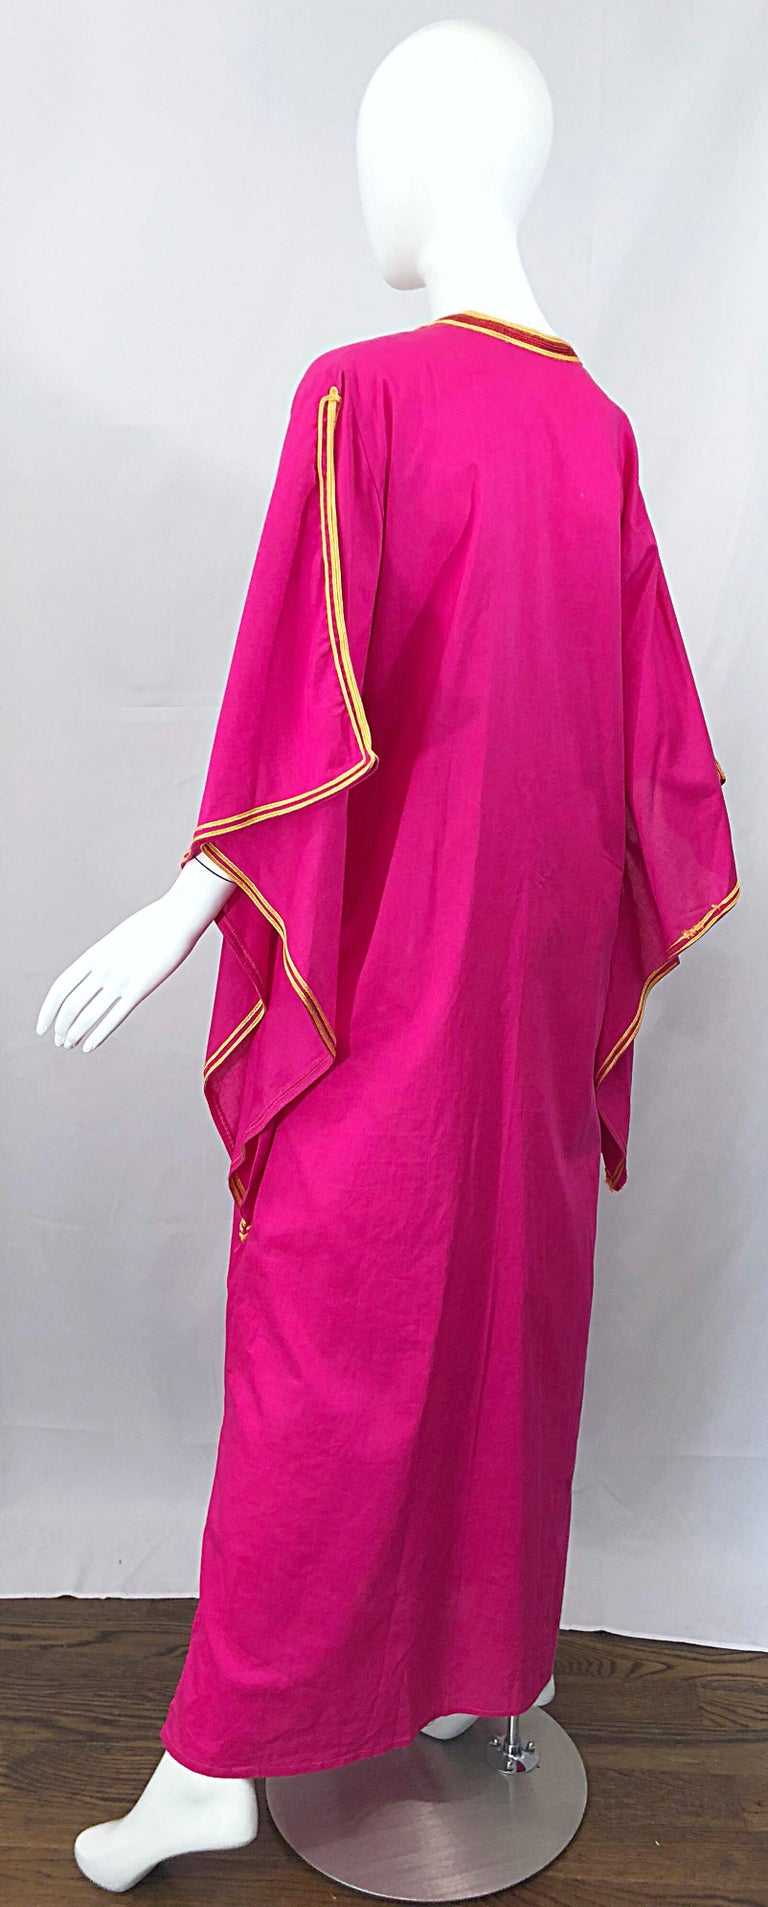 Amazing 1970s Hot Pink + Yellow Angel Sleeve Vintage 70s Kaftan Maxi Dress For Sale 7